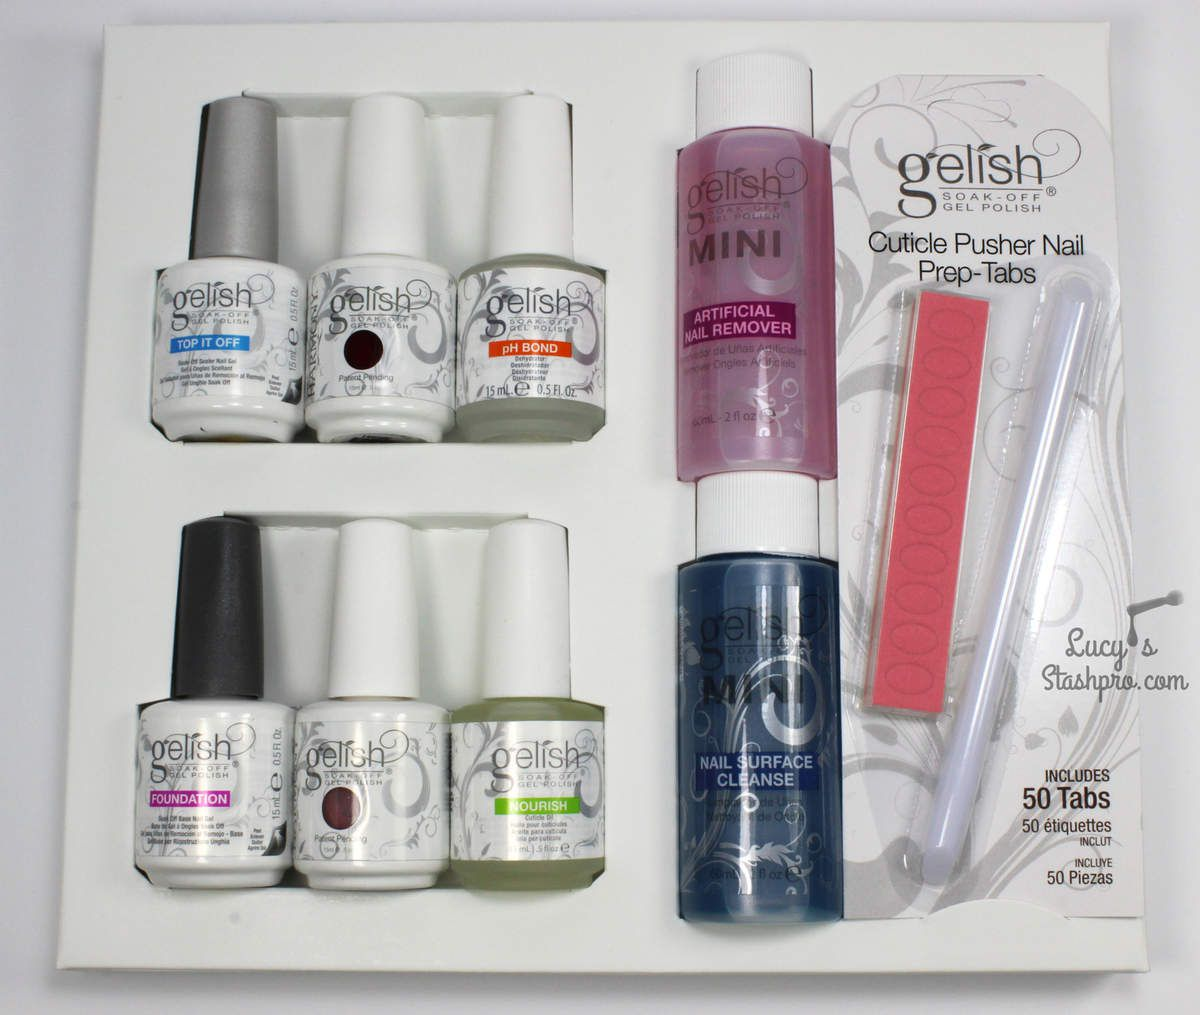 Tutorial: How To Apply &amp&#x3B; Remove Gelish + Gelish Pro 5-45 Kit